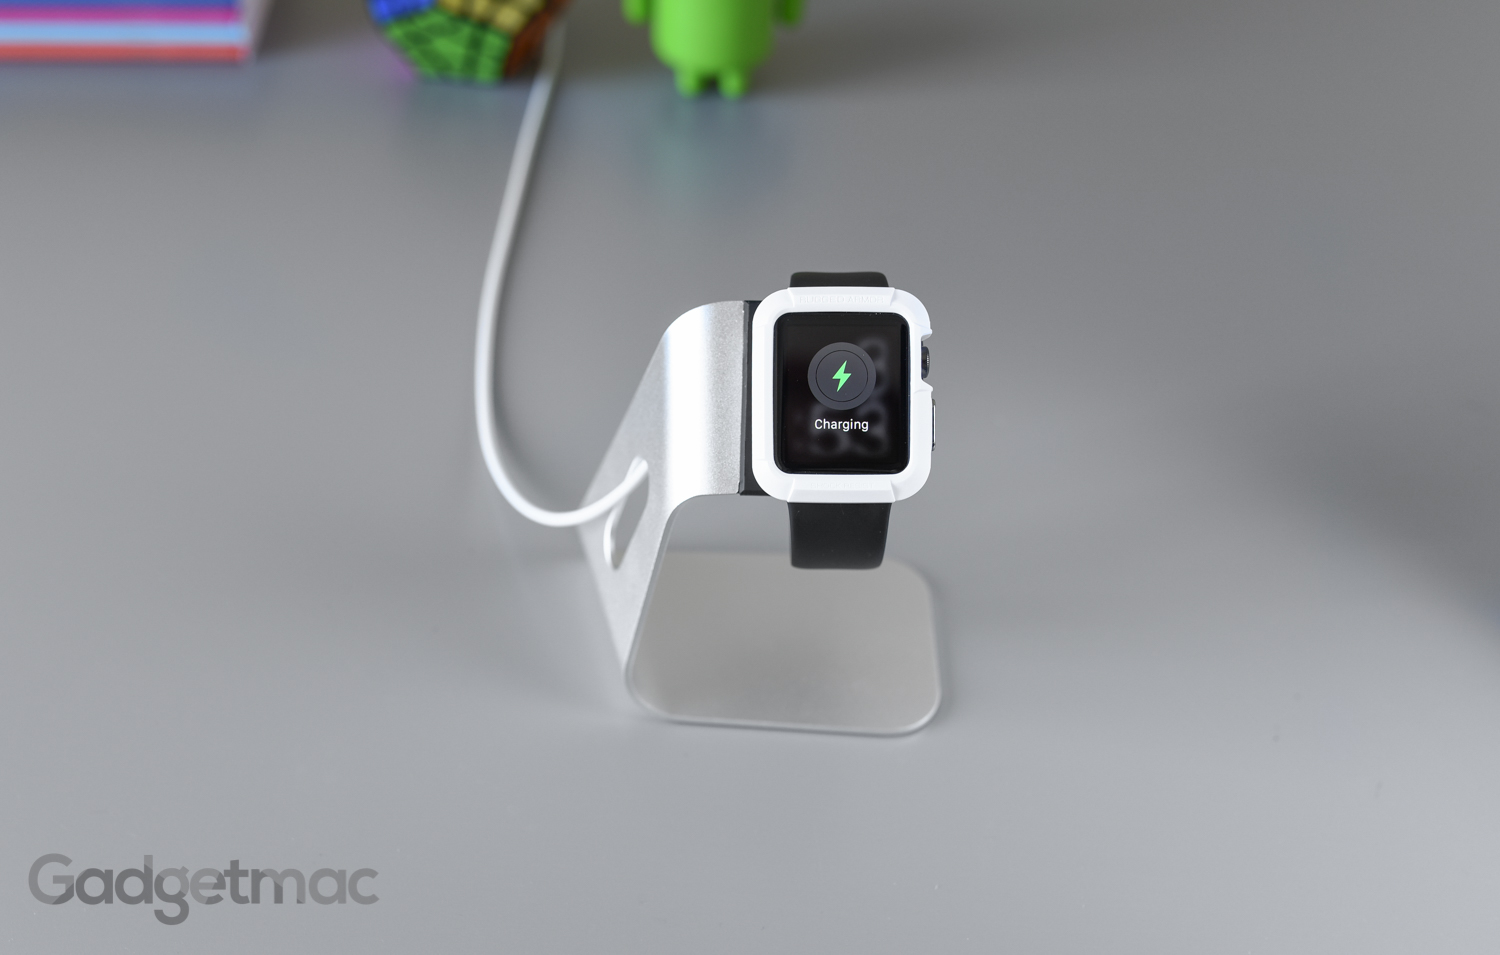 spigen-s330-apple-watch-stand-dock-with-case.jpg